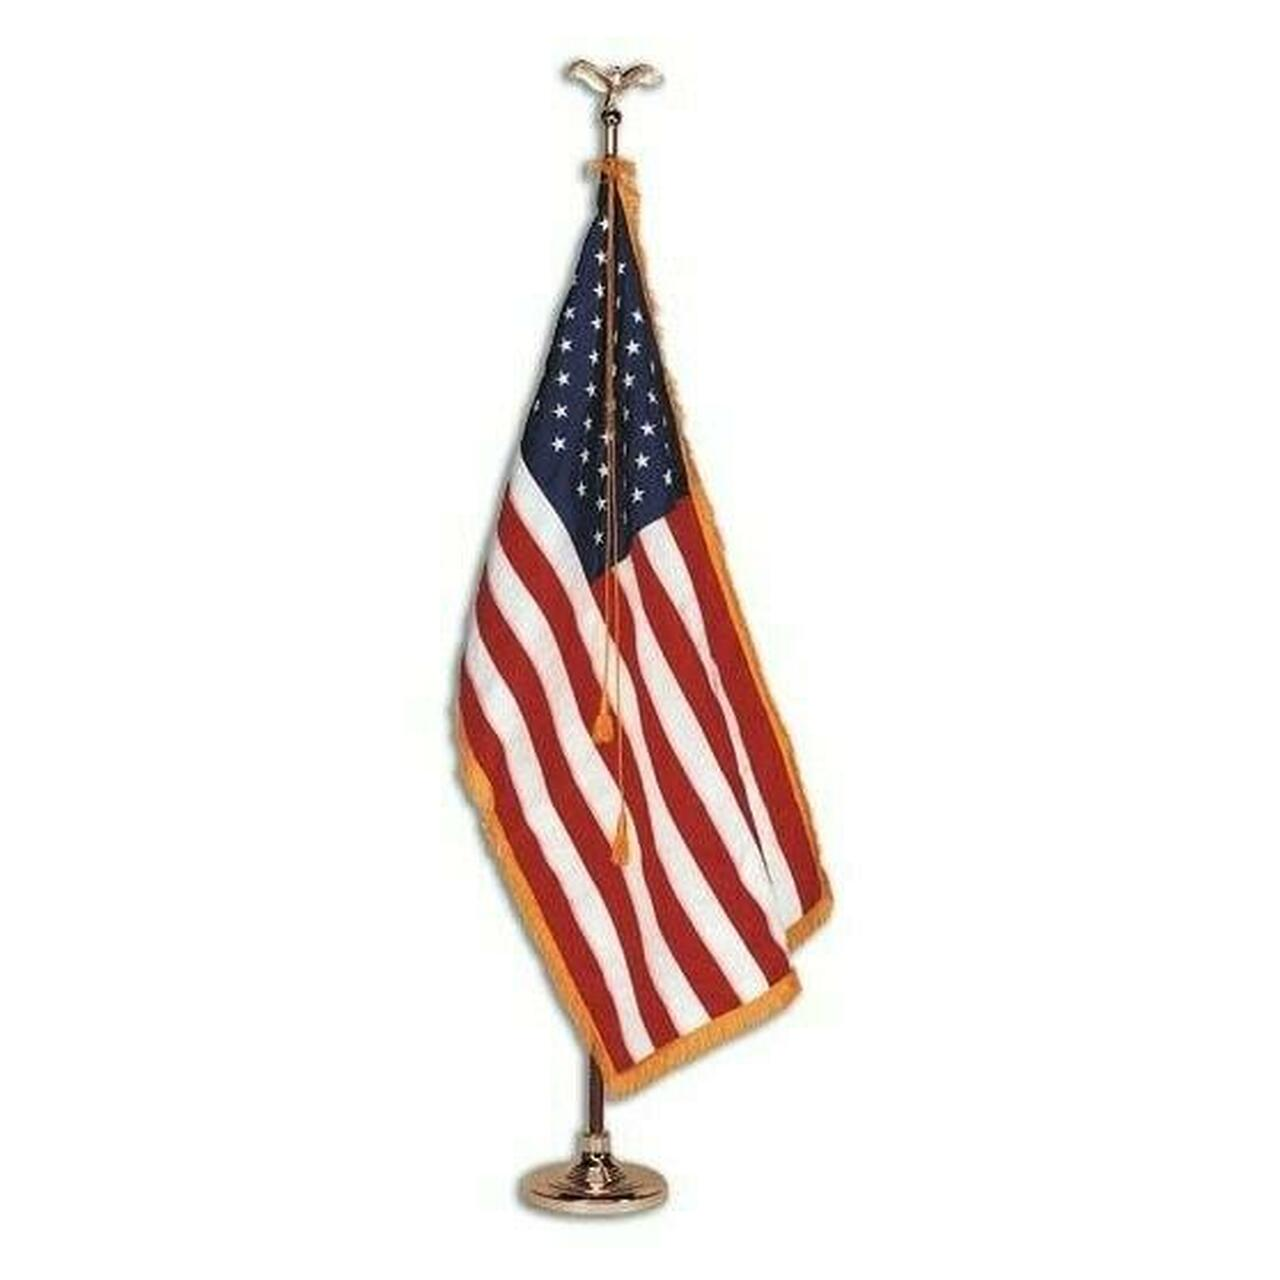 The American Indoor Display Flag set has a two-piece oak pole that sits in a gold stand with a gold eagle adorned on the top. The American flag with gold fringe hangs from the pole while a gold cord and tassel is draped atop the flag. The American Flag is a rectangular nylon flag with 13 sewn stripes alternating red and white and 50 embroidered white stars. The flag includes a sleeve opening to fit an indoor flagpole and gold fringe, decorative thread, around the border of the flag on three sides.